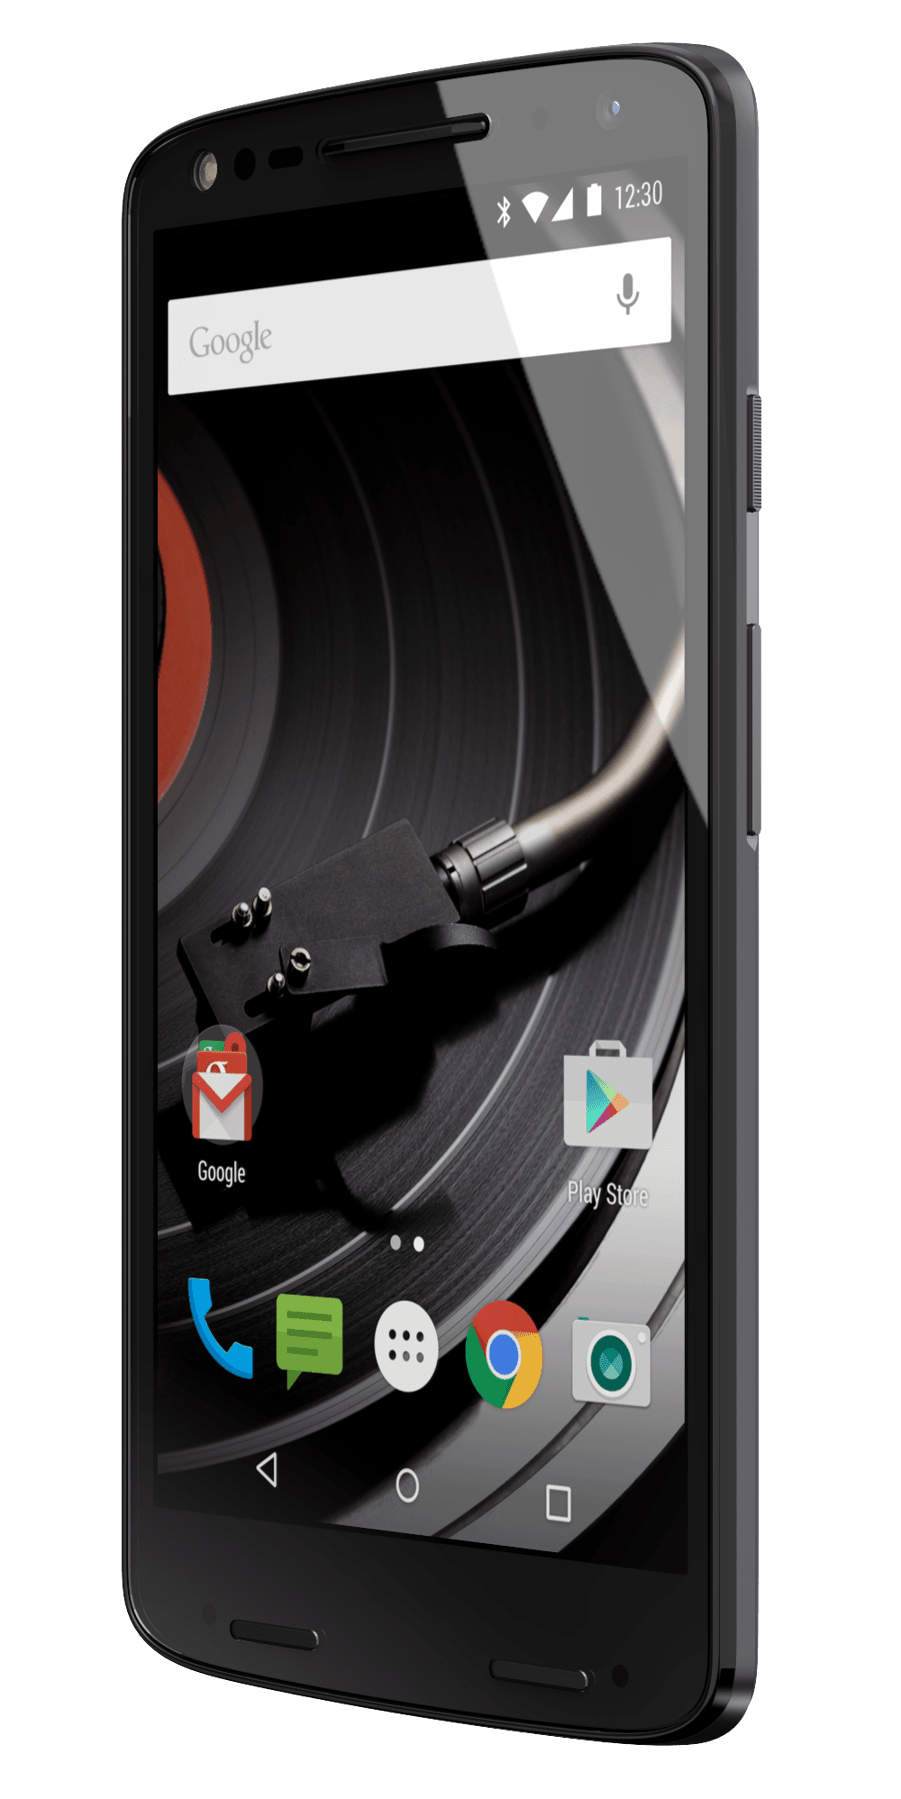 Motorola Moto X Force - images